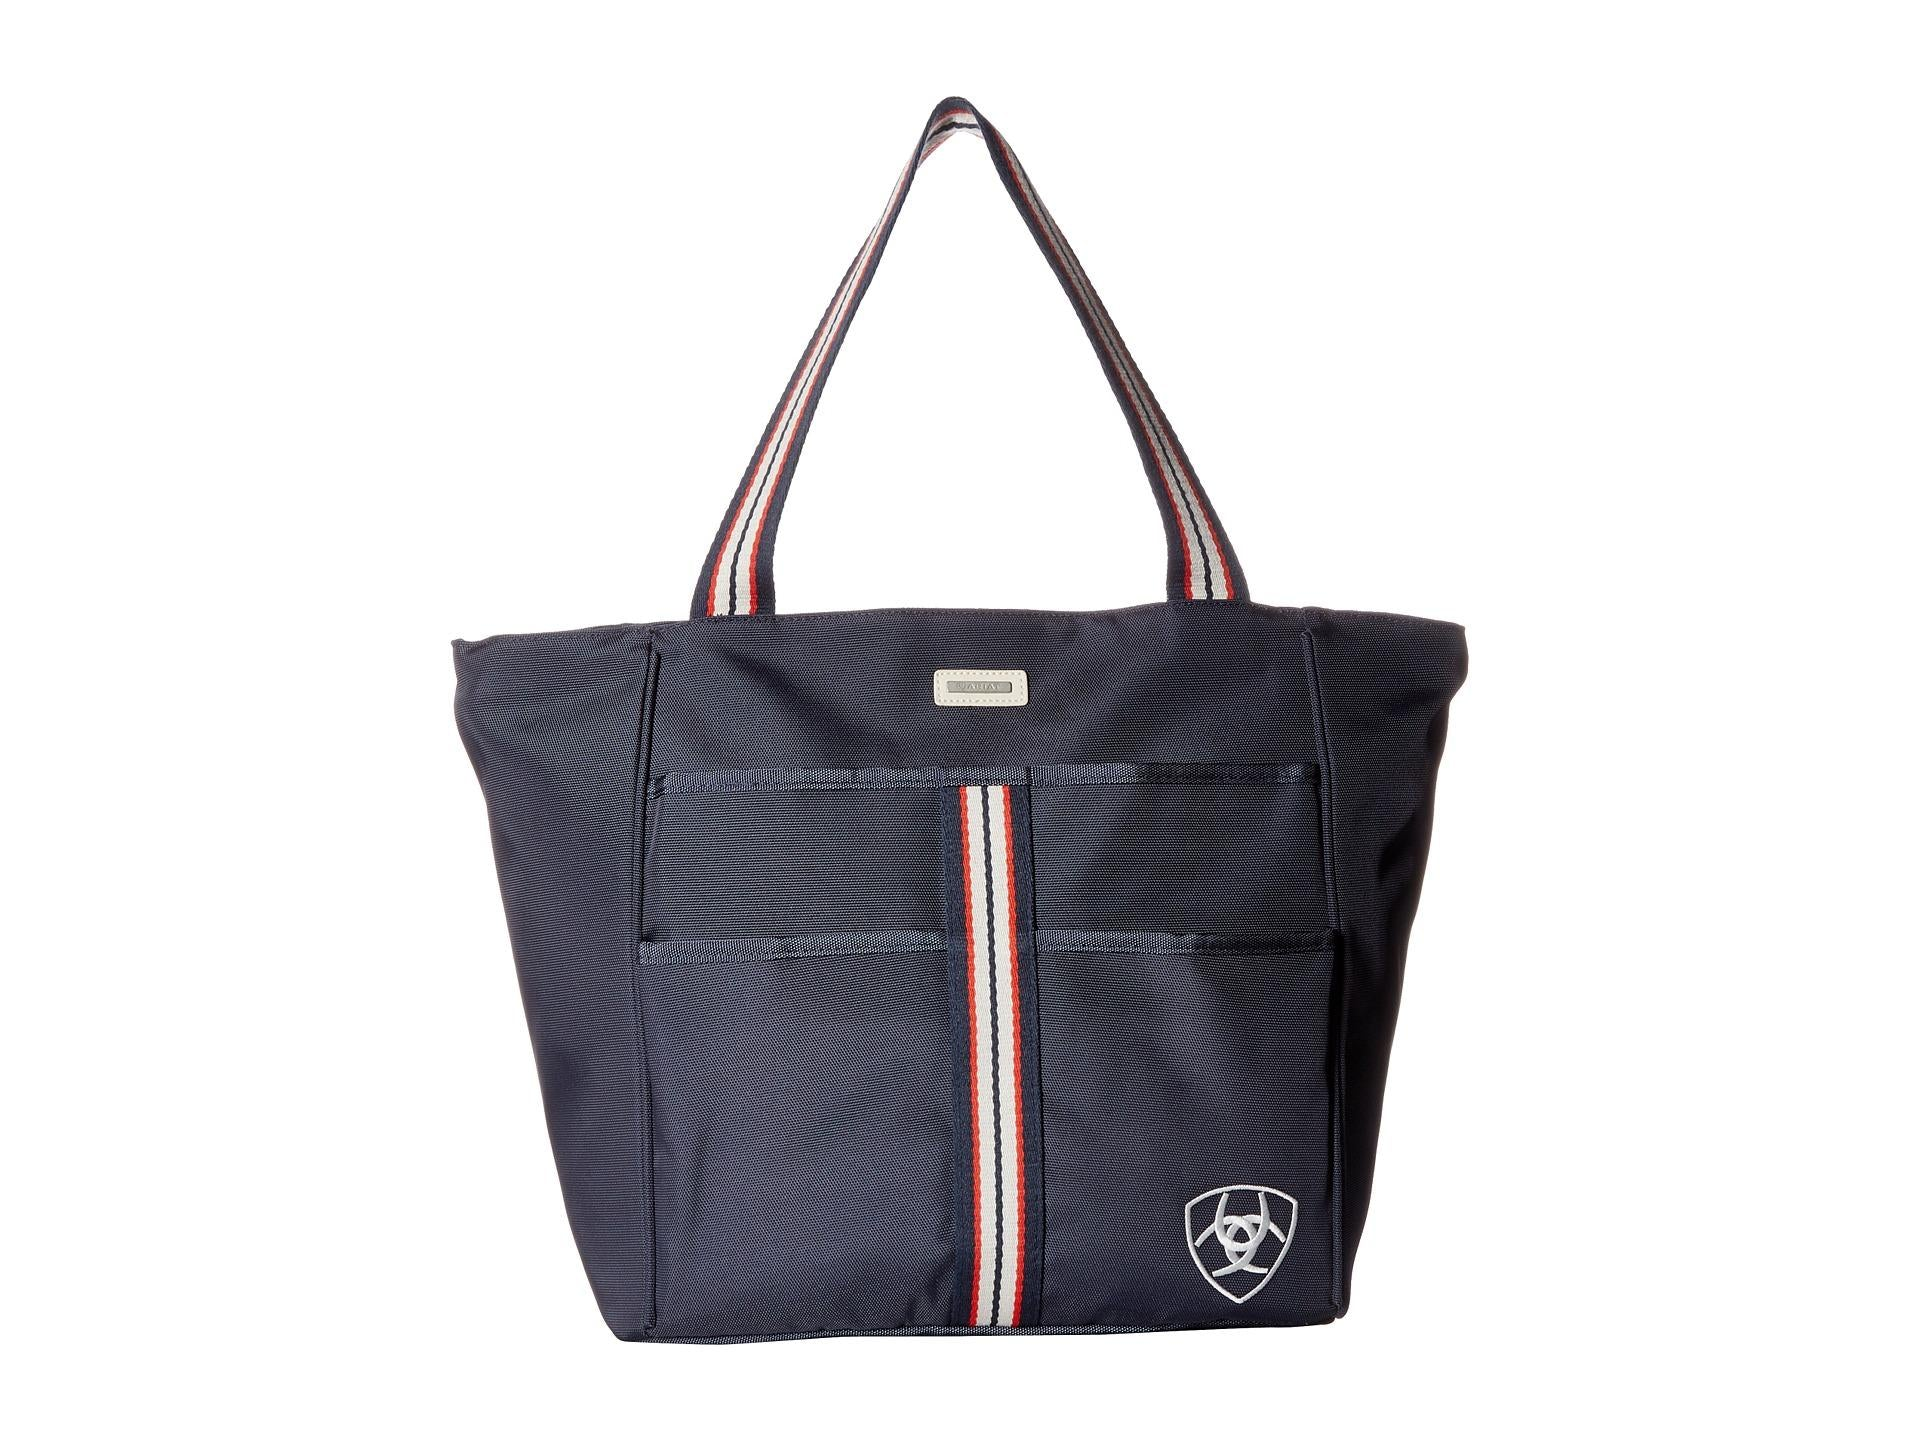 Ariat Team Carryall Tote - Navy